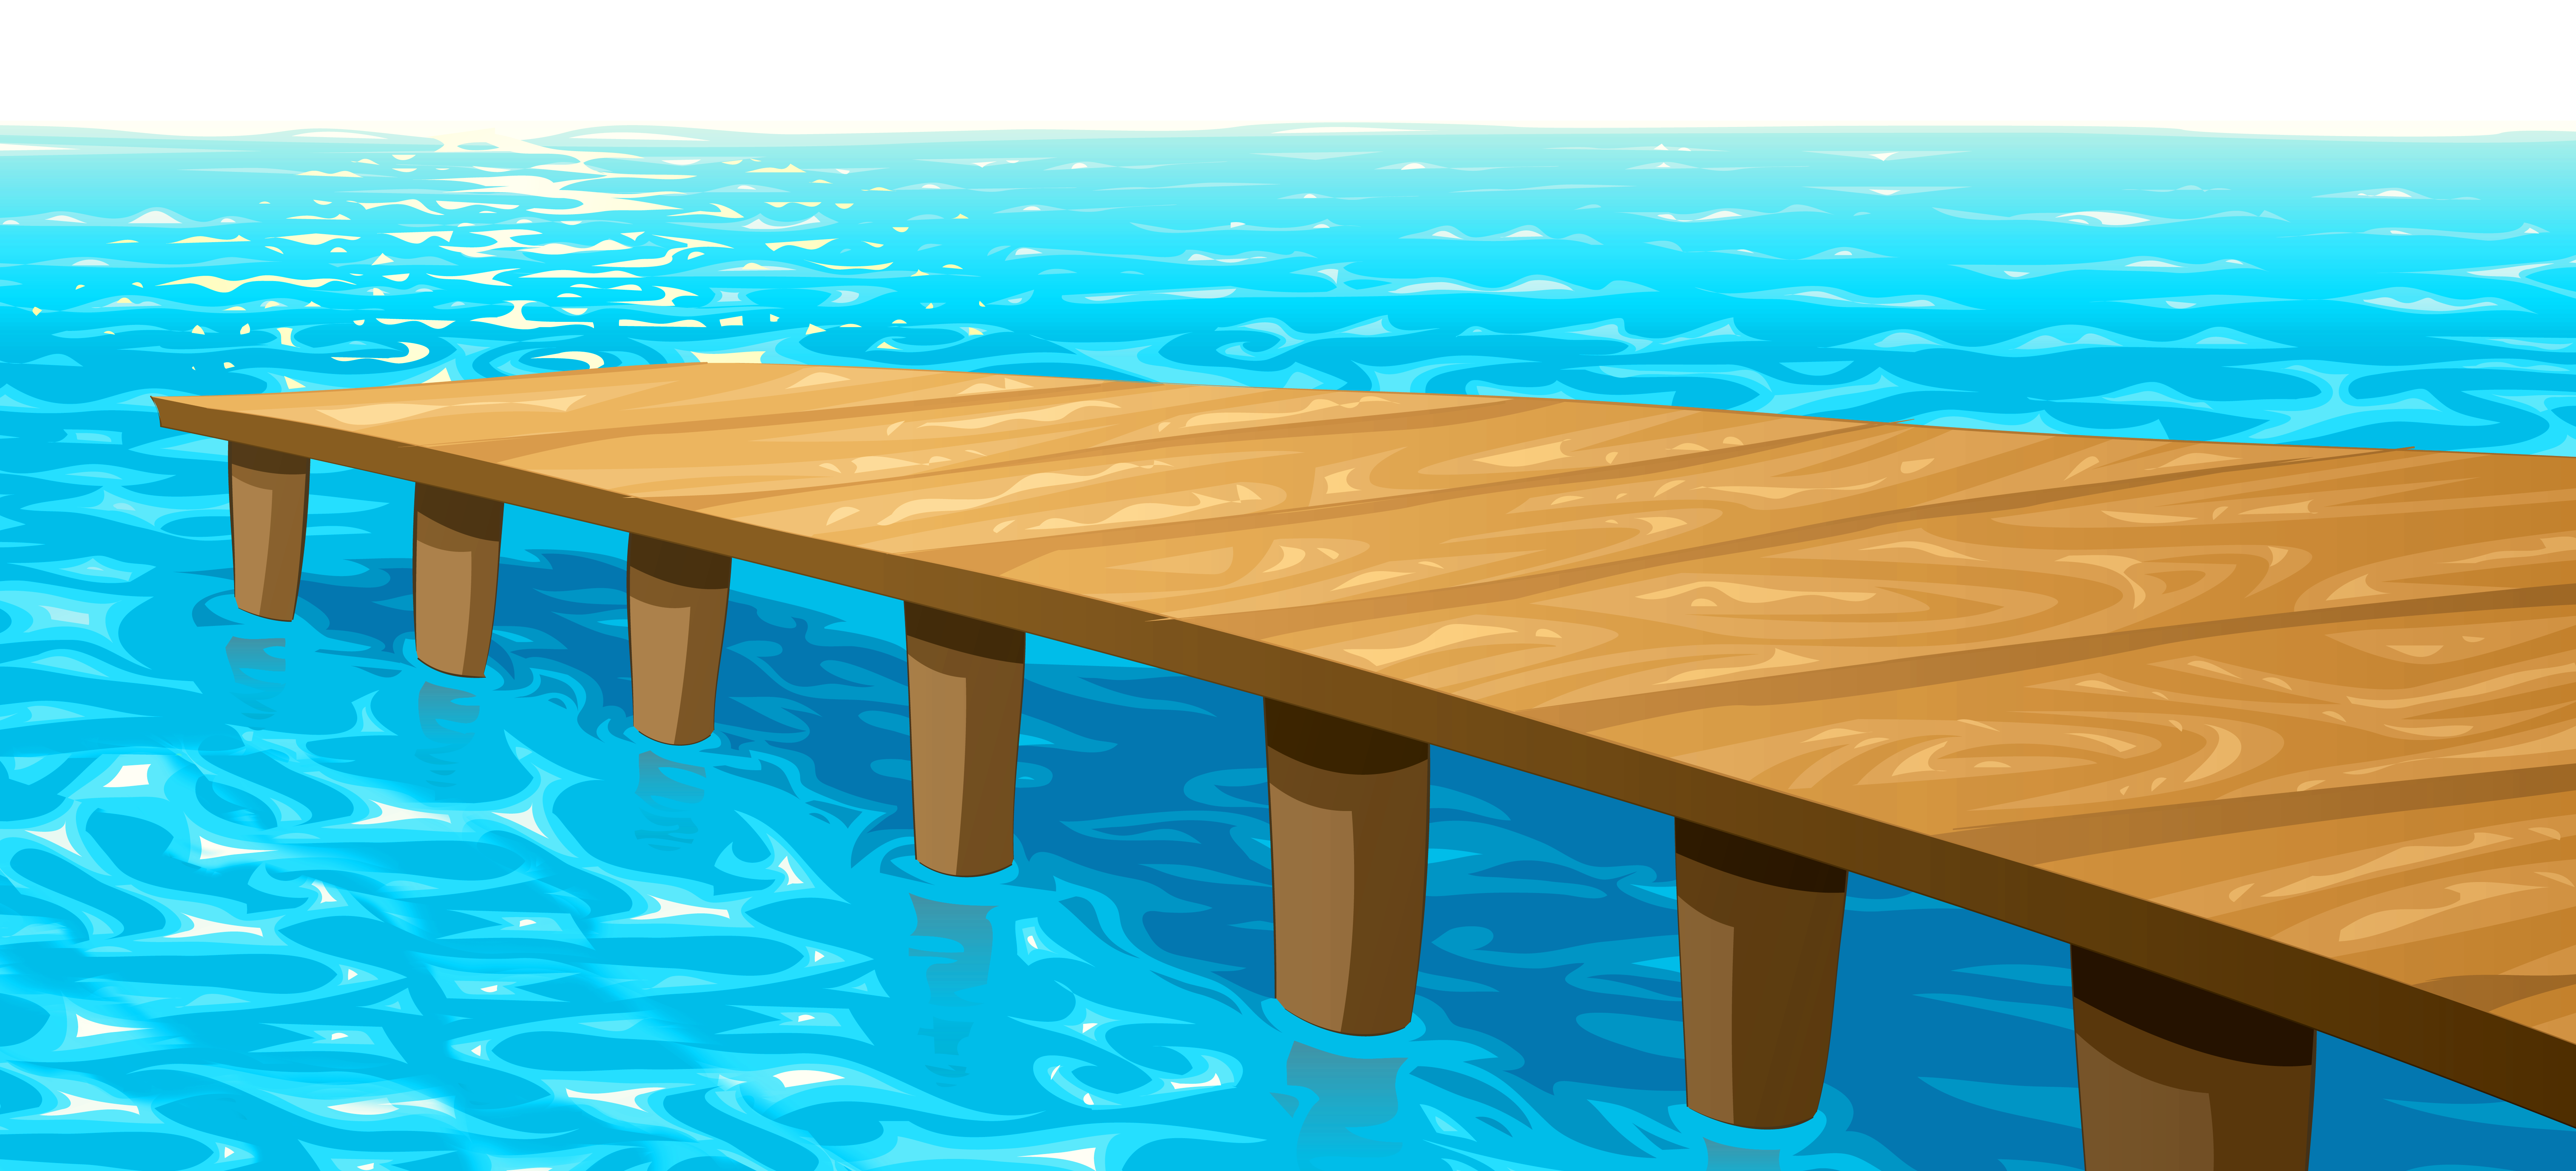 Sea png gallery yopriceville. Ocean clipart ground